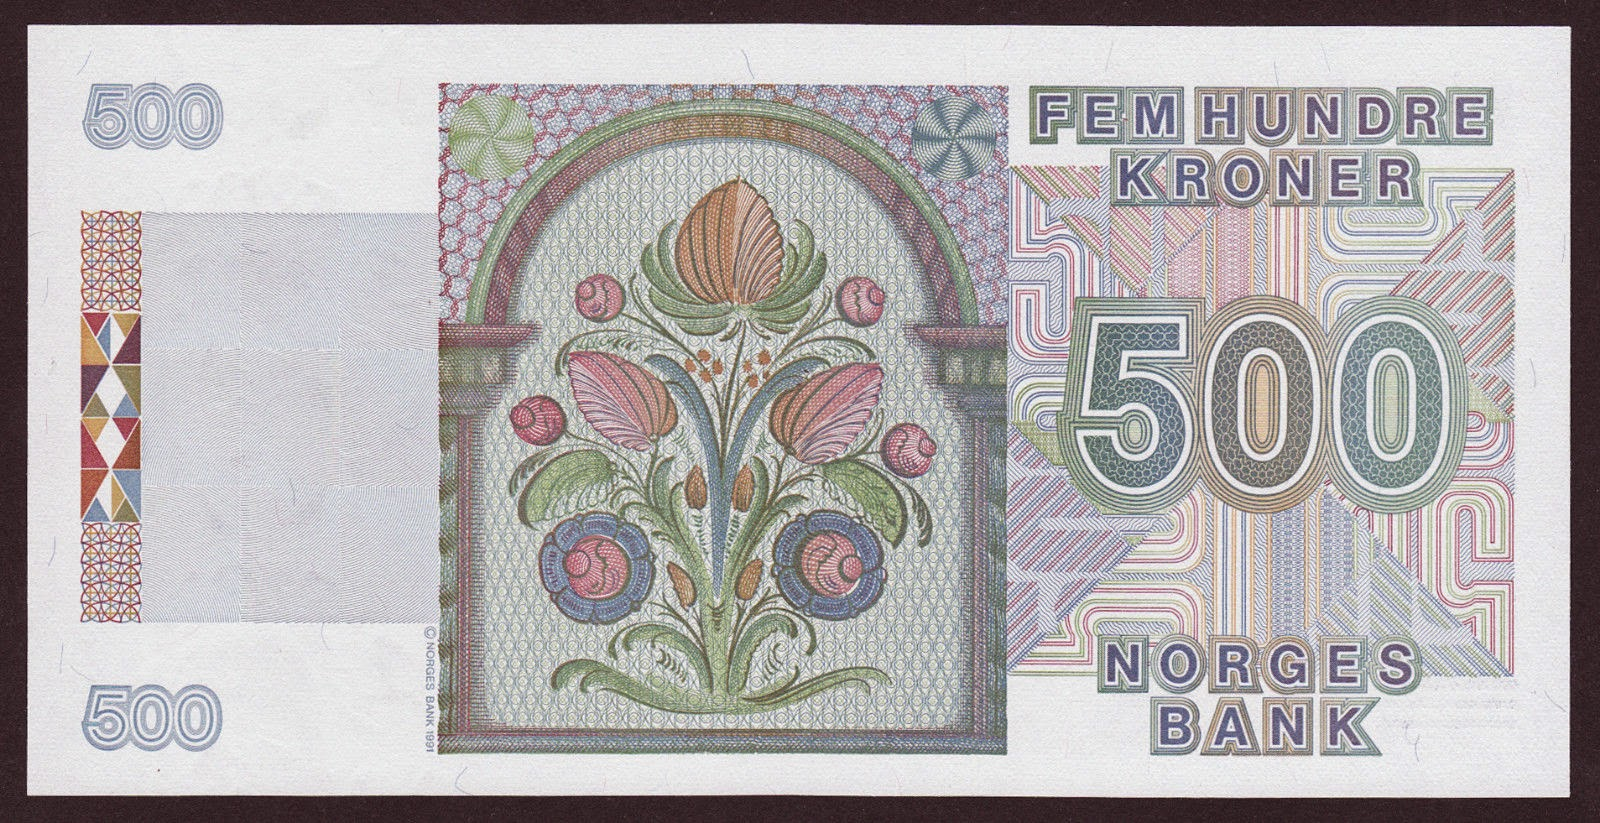 Norway Banknotes 500 Kroner note